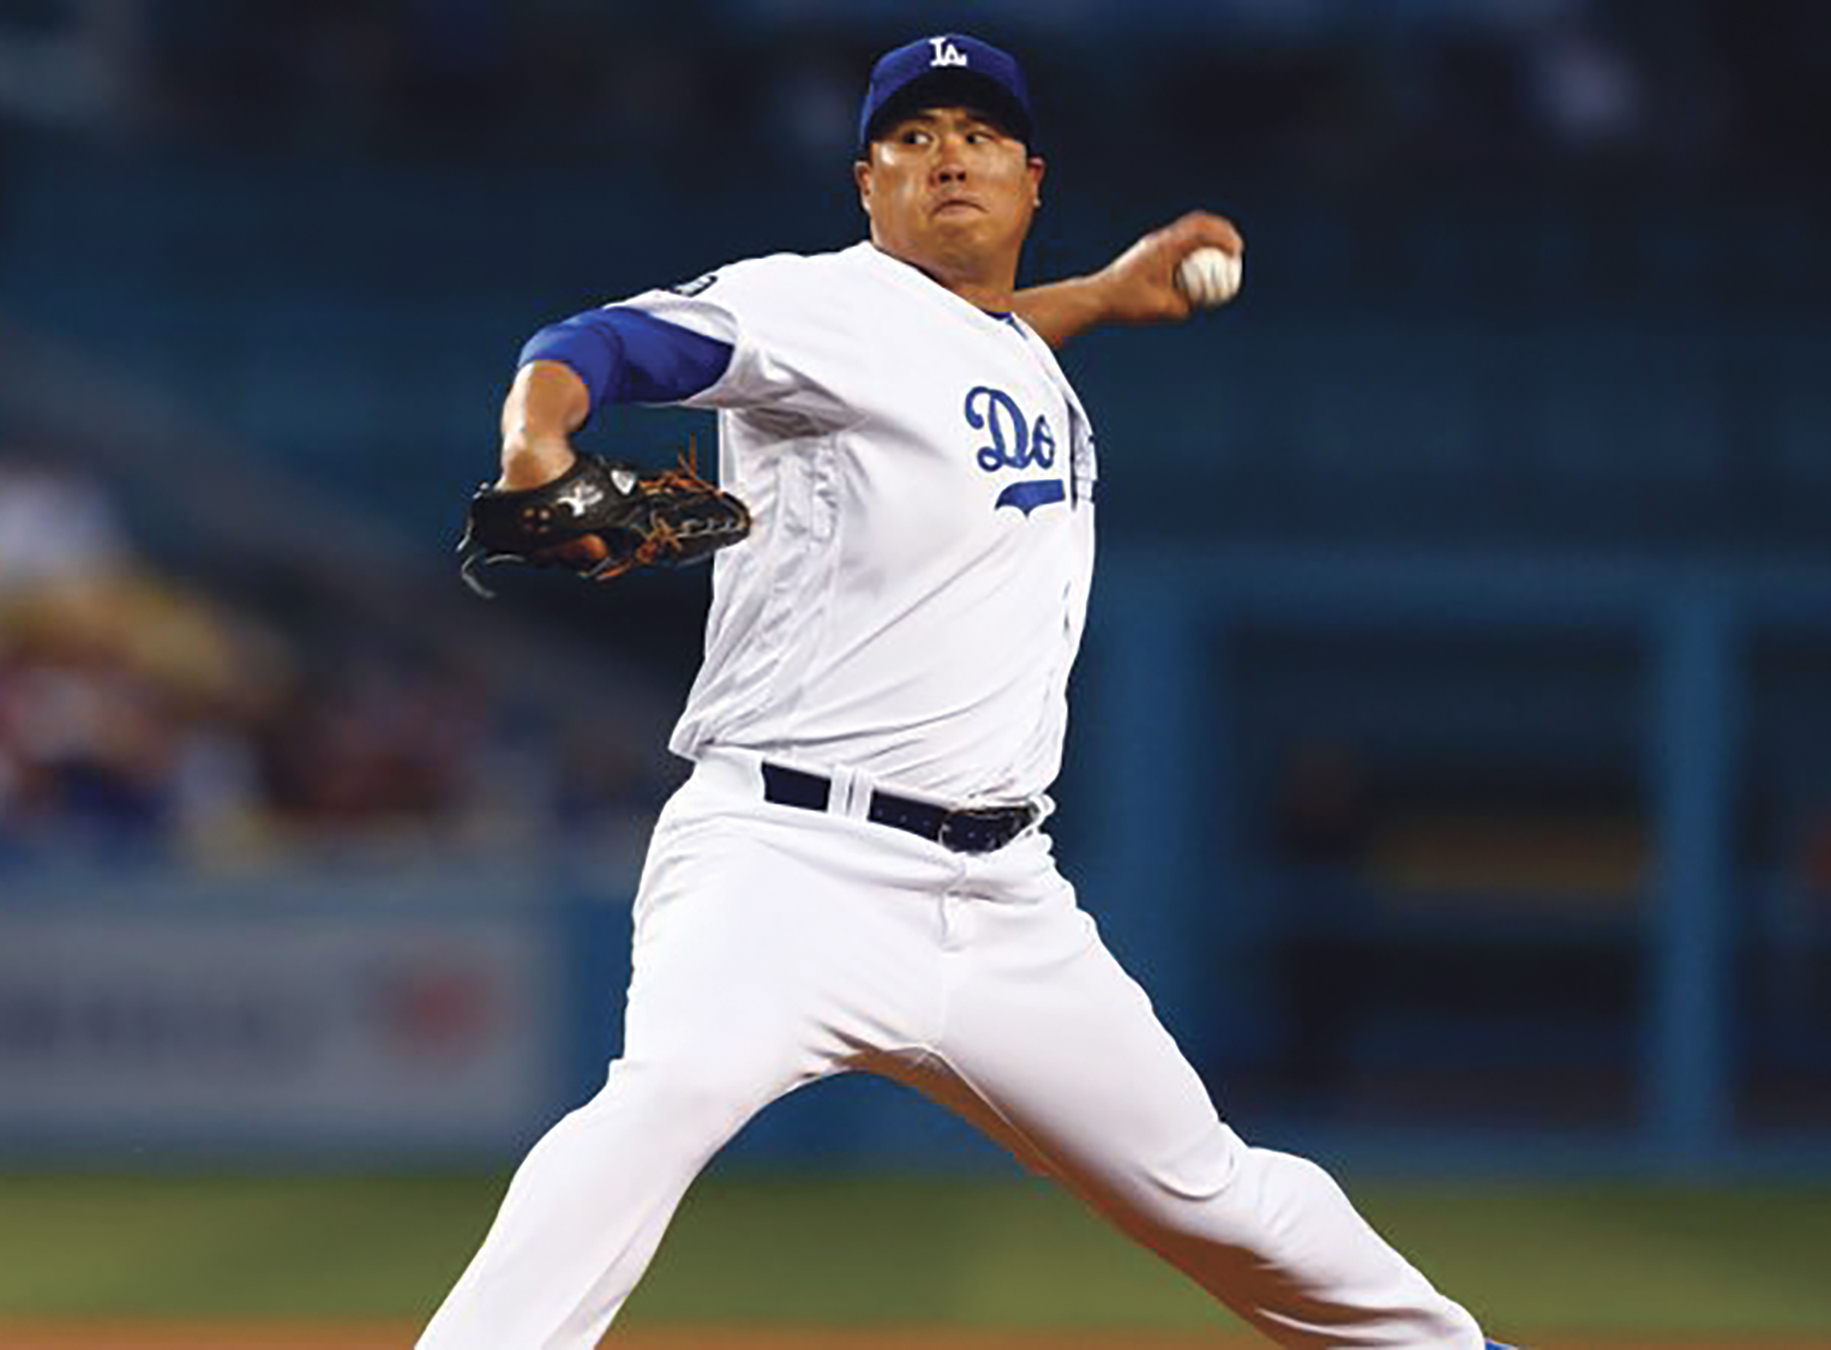 Hyn-Jin Ryu -leads the league with a 1.71 ERA. (courtesy photo)